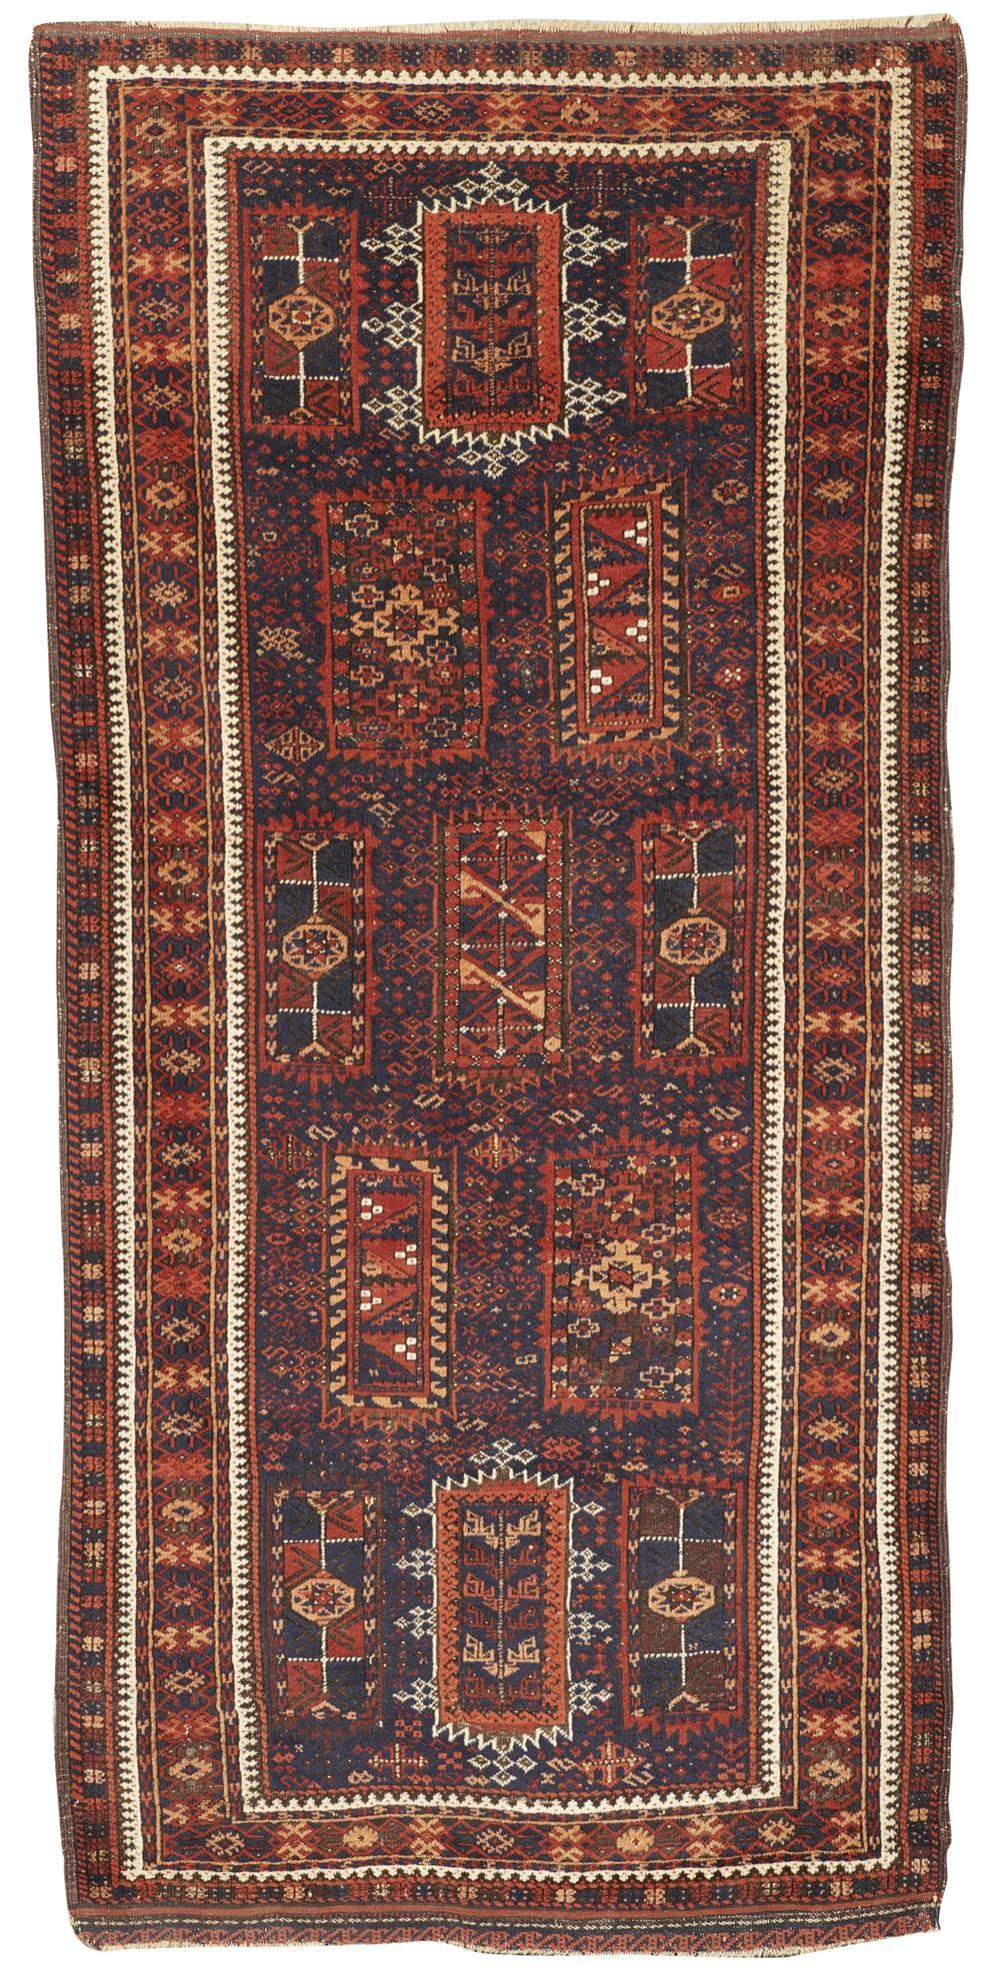 Belouch Rug, Afghanistan, late 19th century; 7 ft. 4 in. x 3 ft. 6 in.